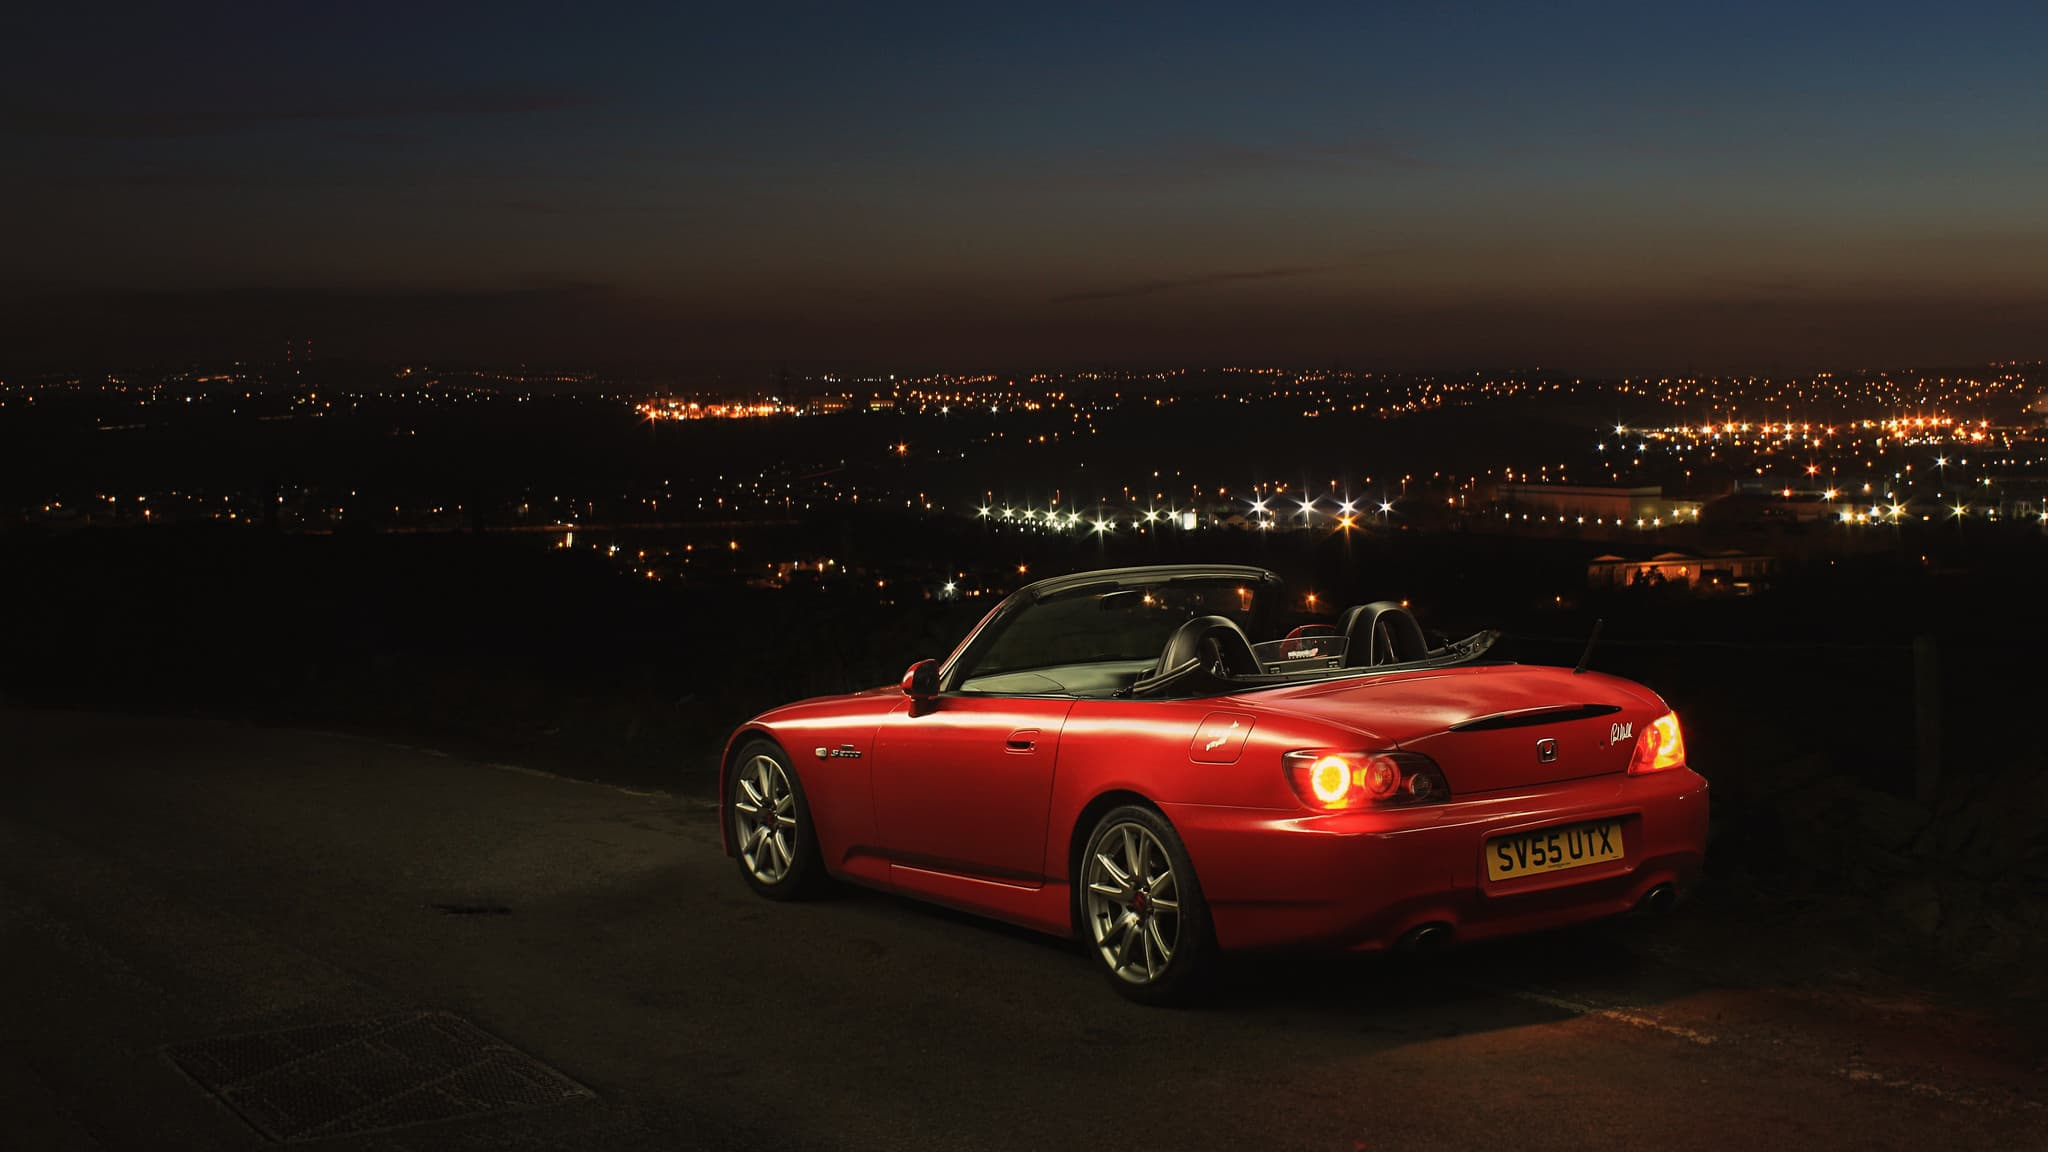 Red Honda s2000 at night